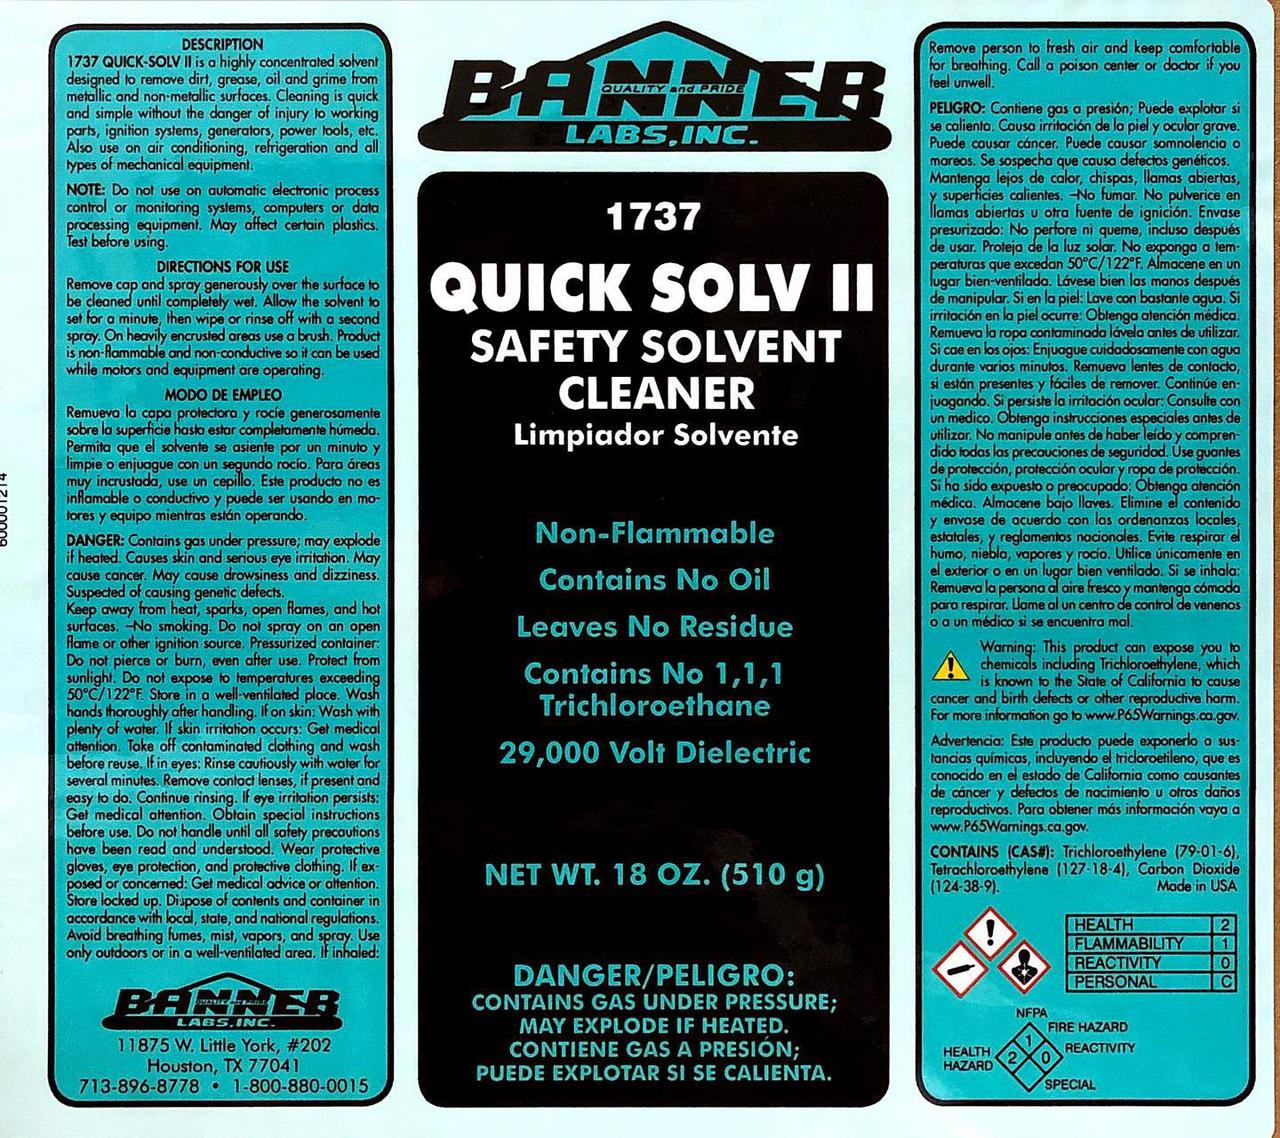 Quick Solv II is a highly concentrated solvent designed to